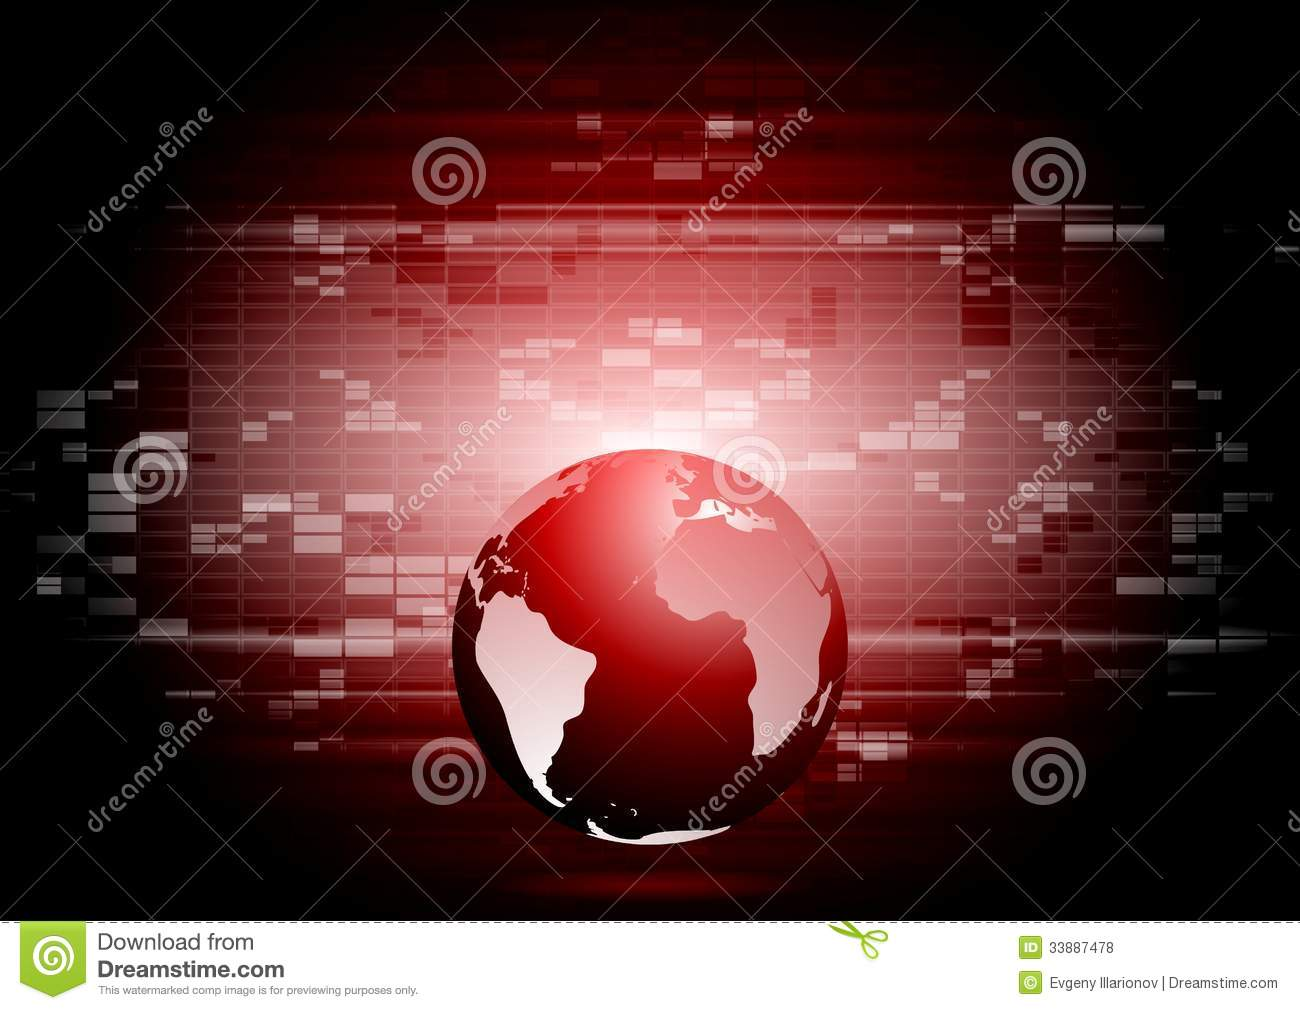 Abstract Technology World Globe Backdrop Stock Vector ...